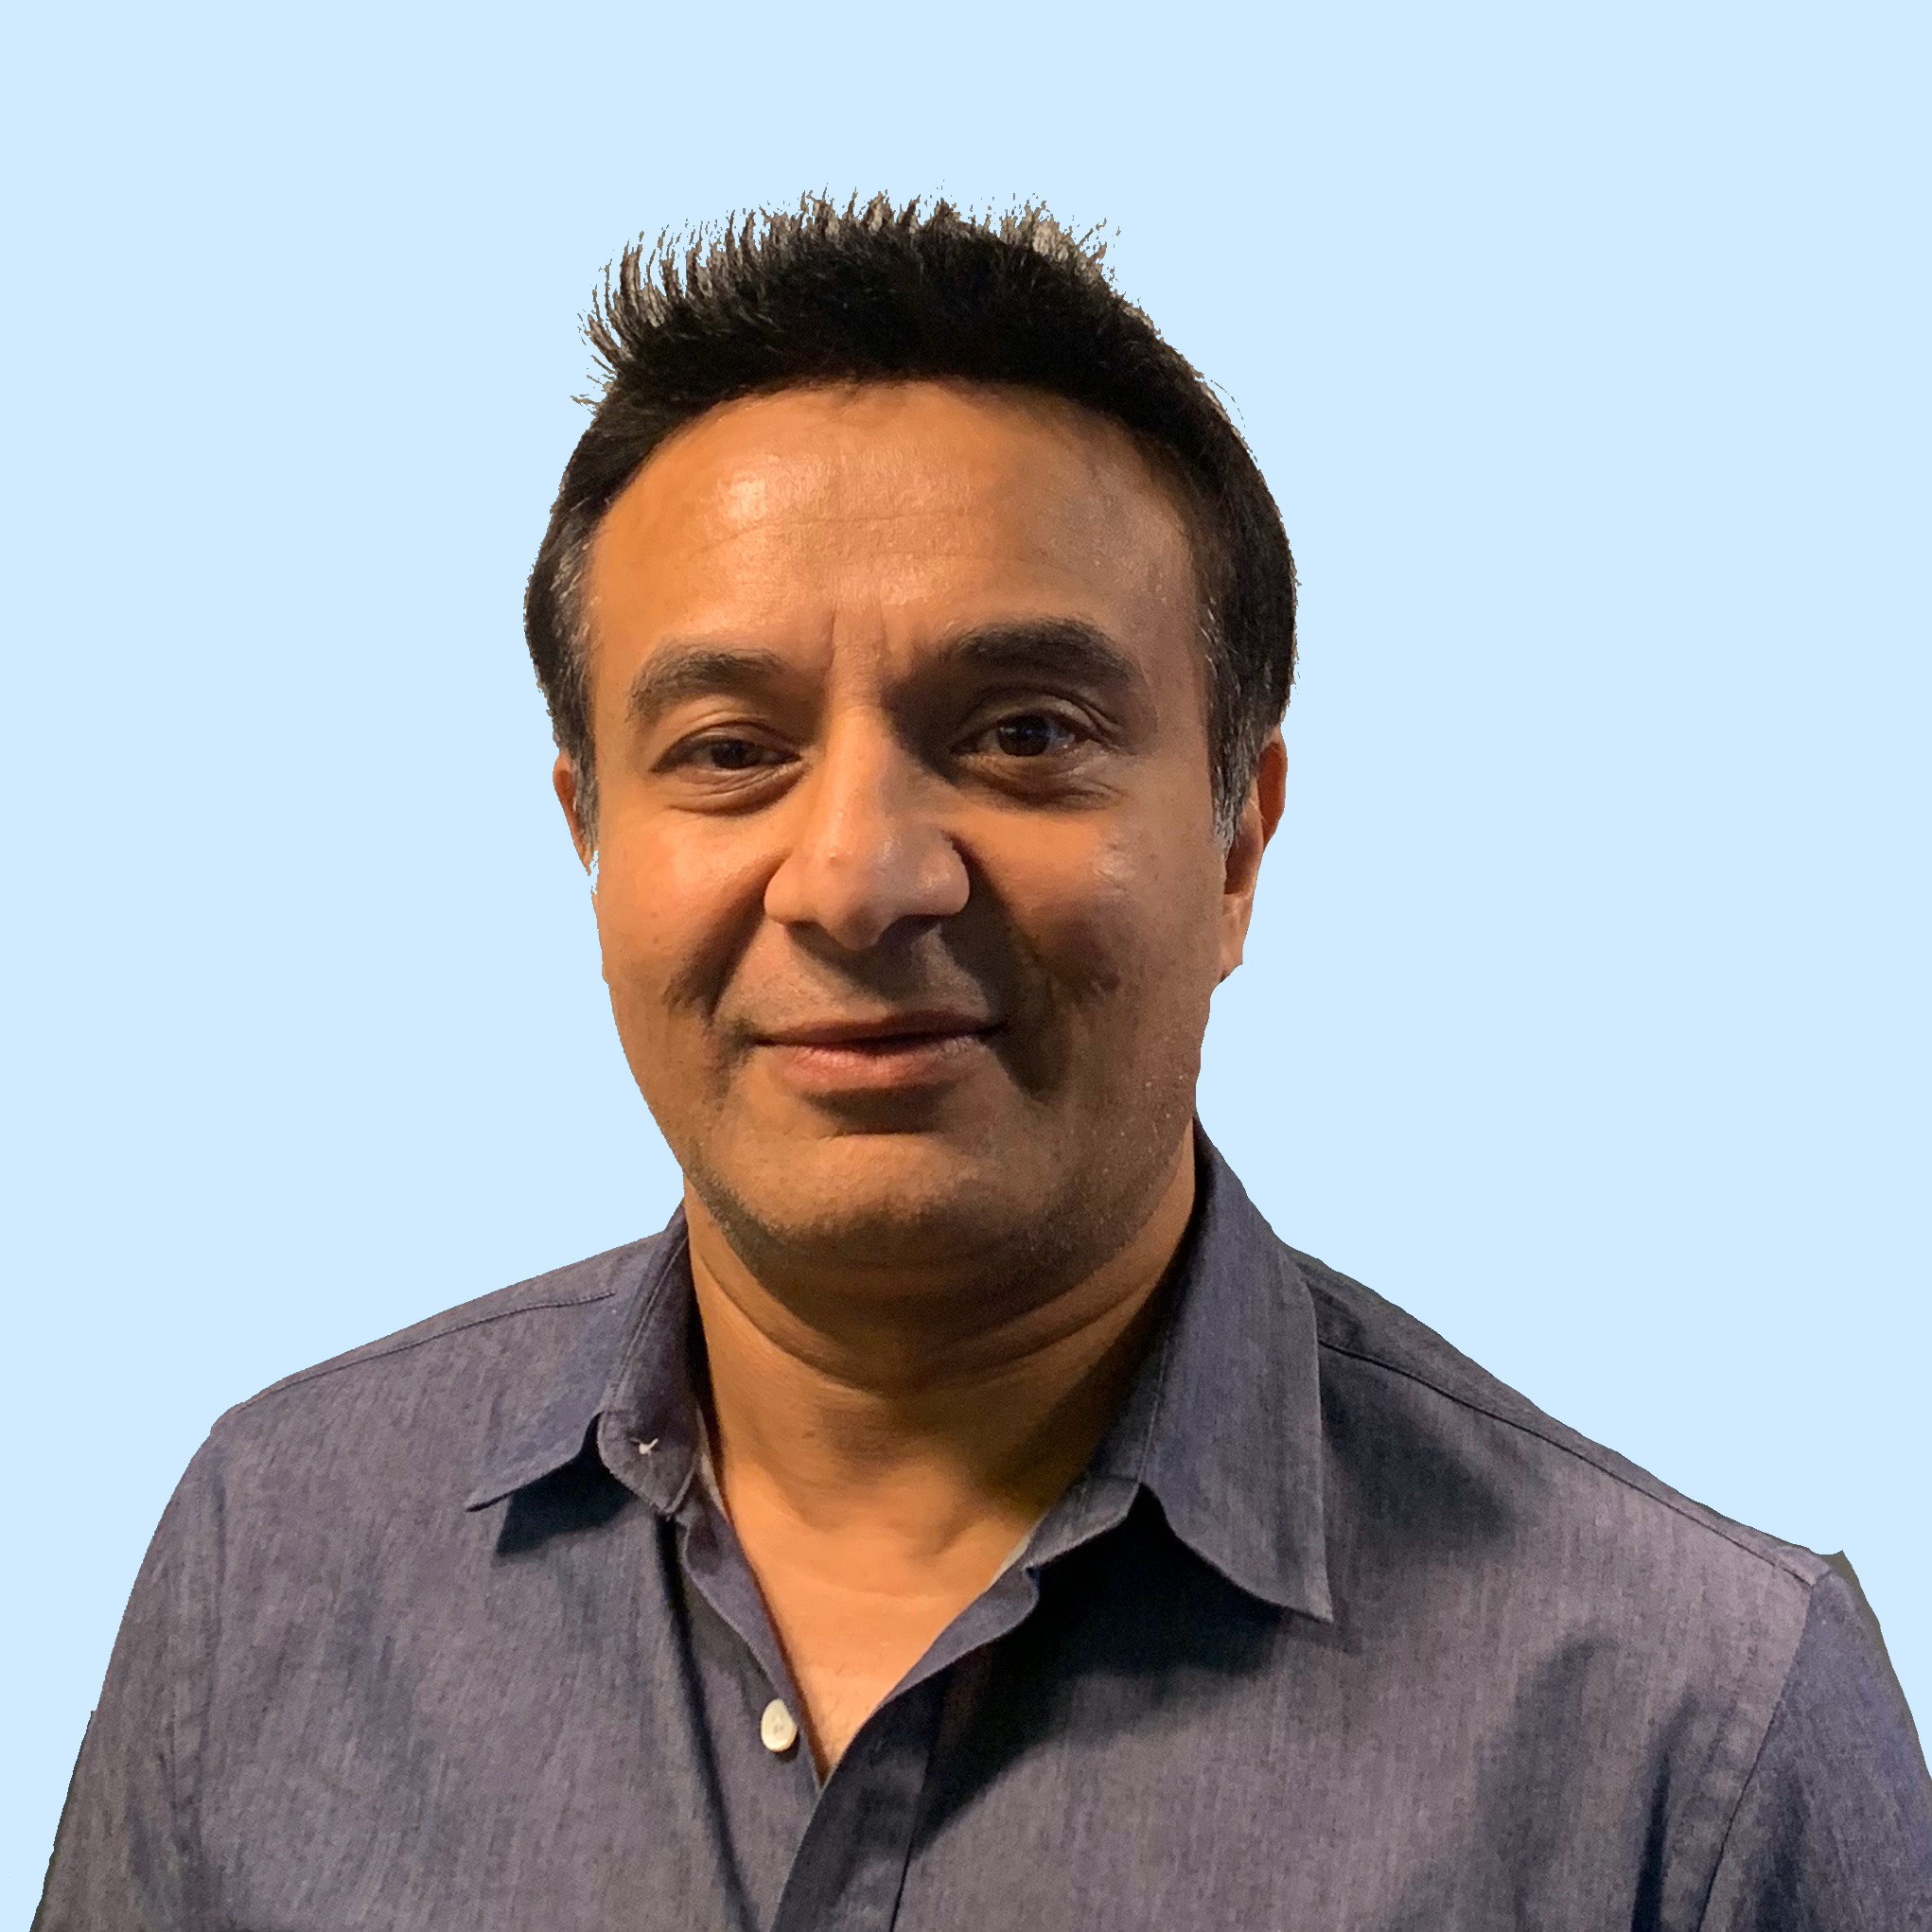 Sandeep Patel - Chief Executive Officer